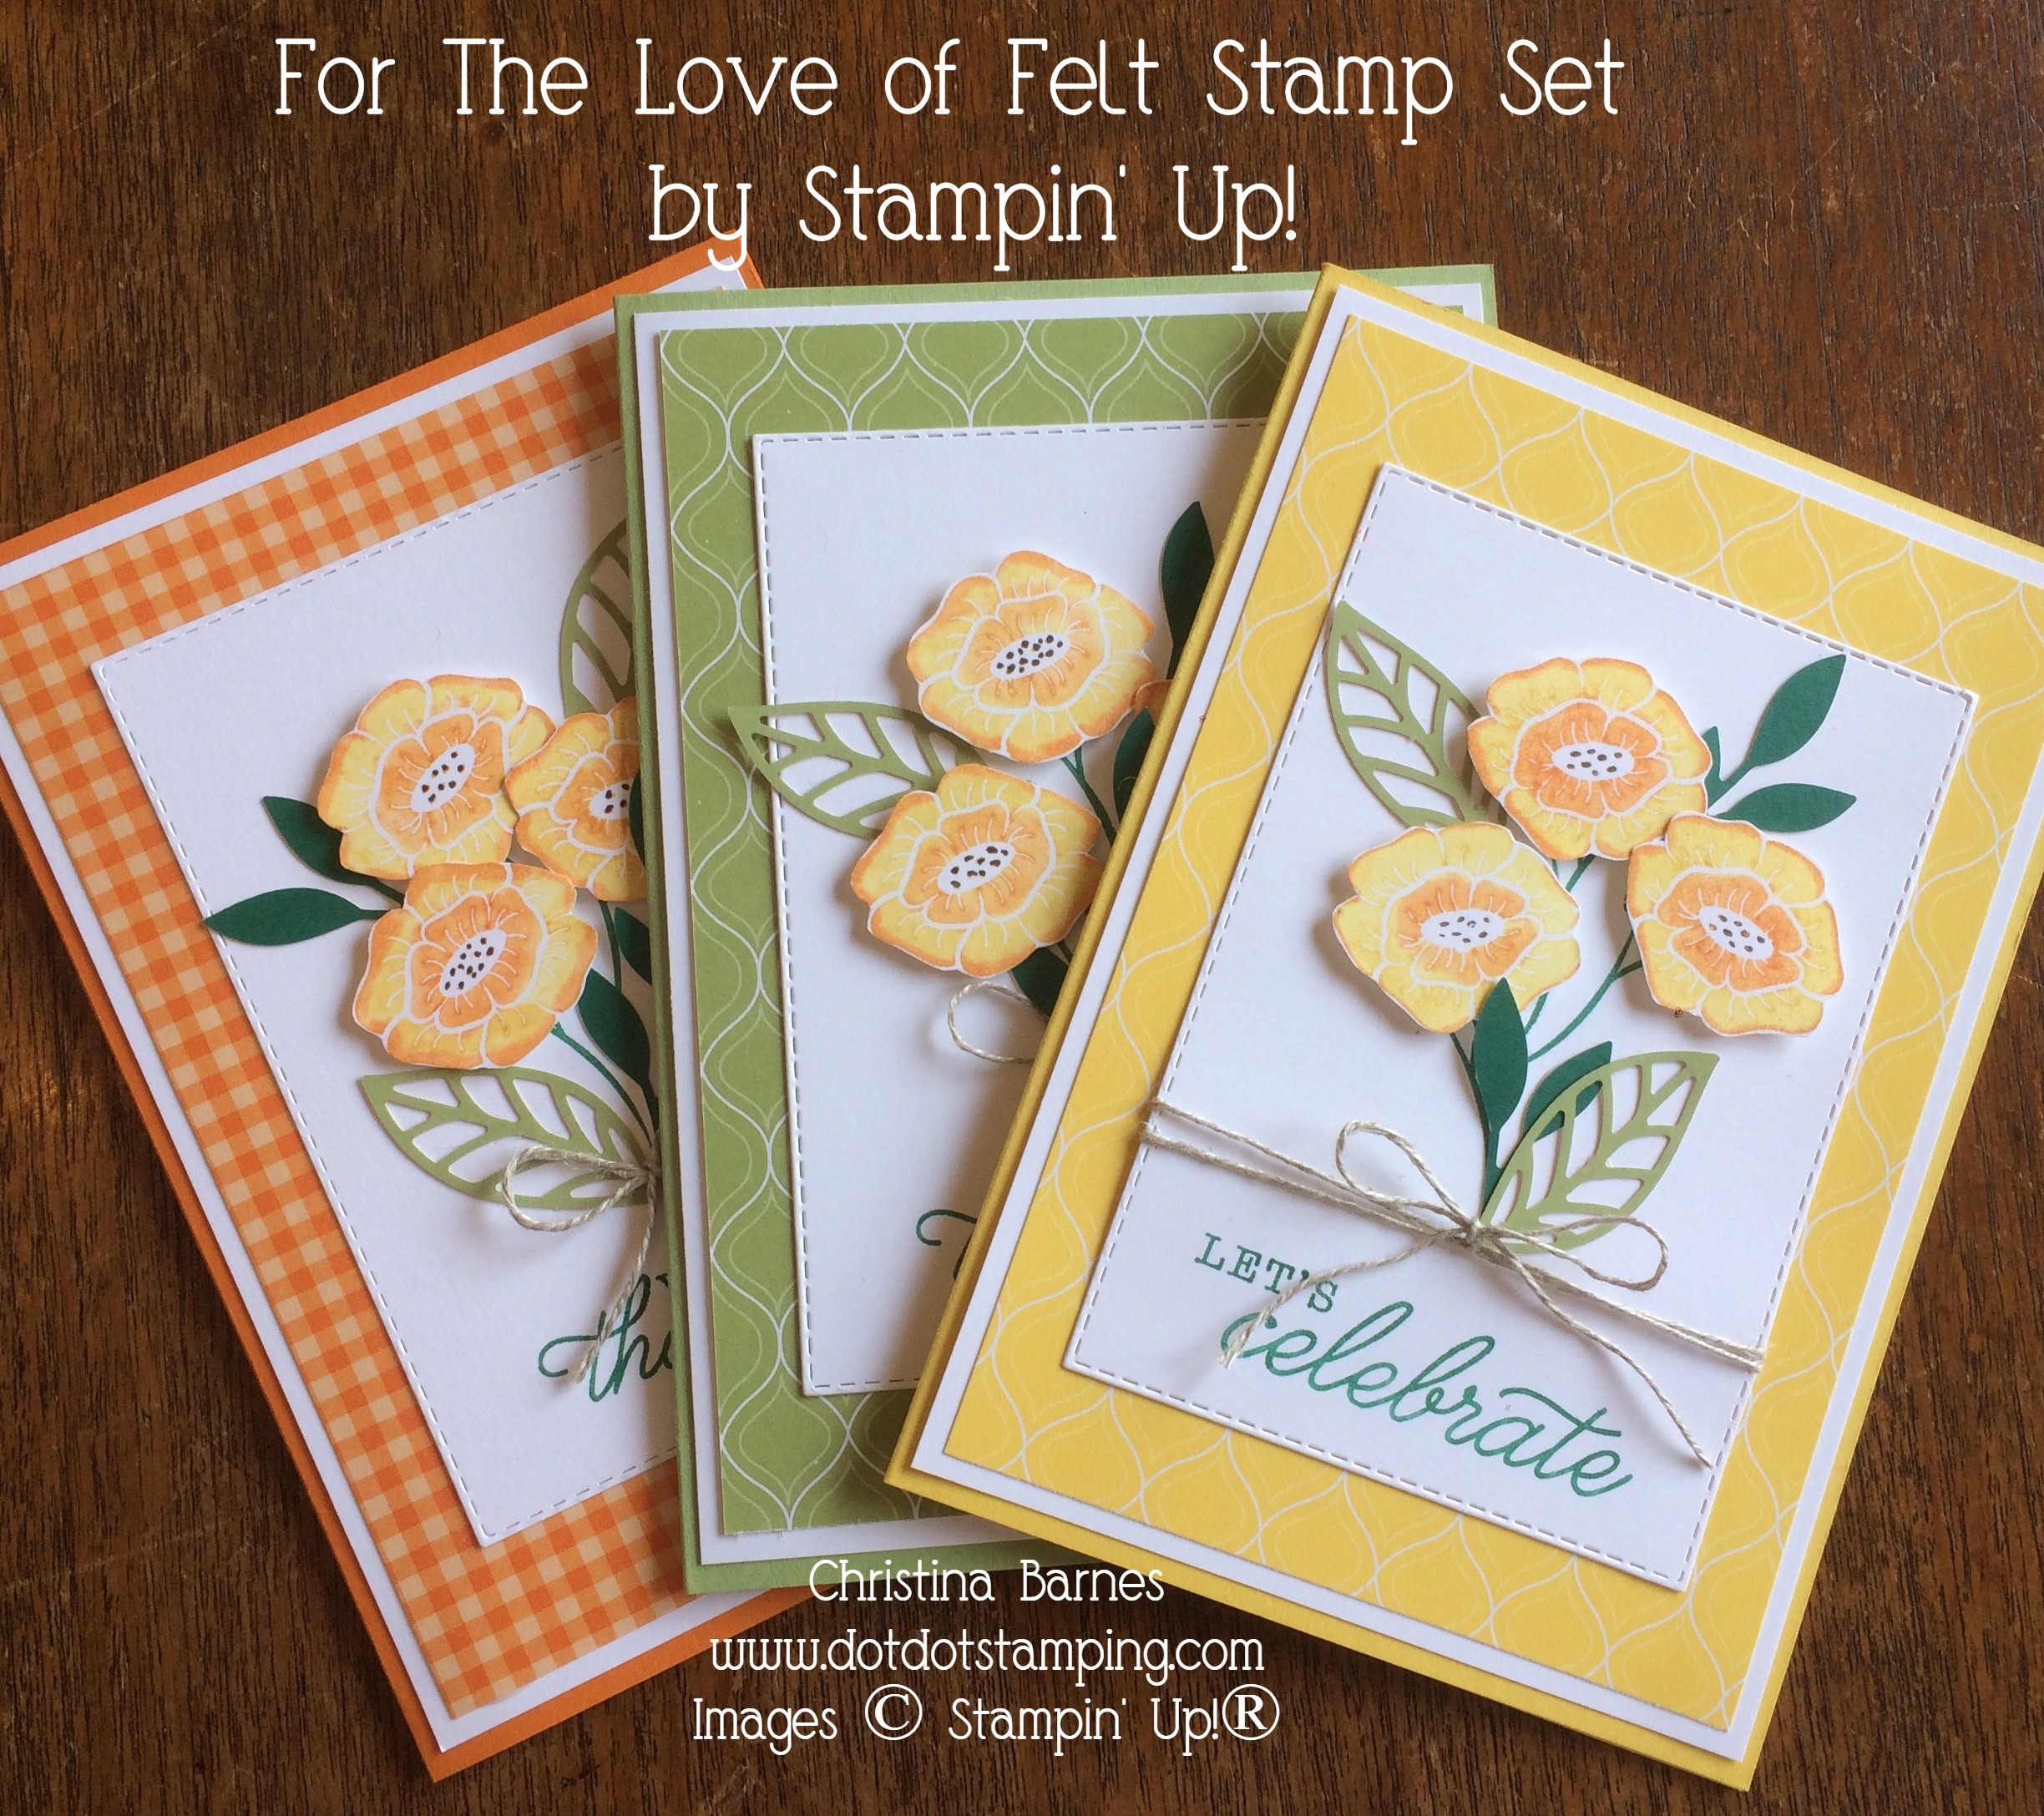 For The Love of Felt Card Set